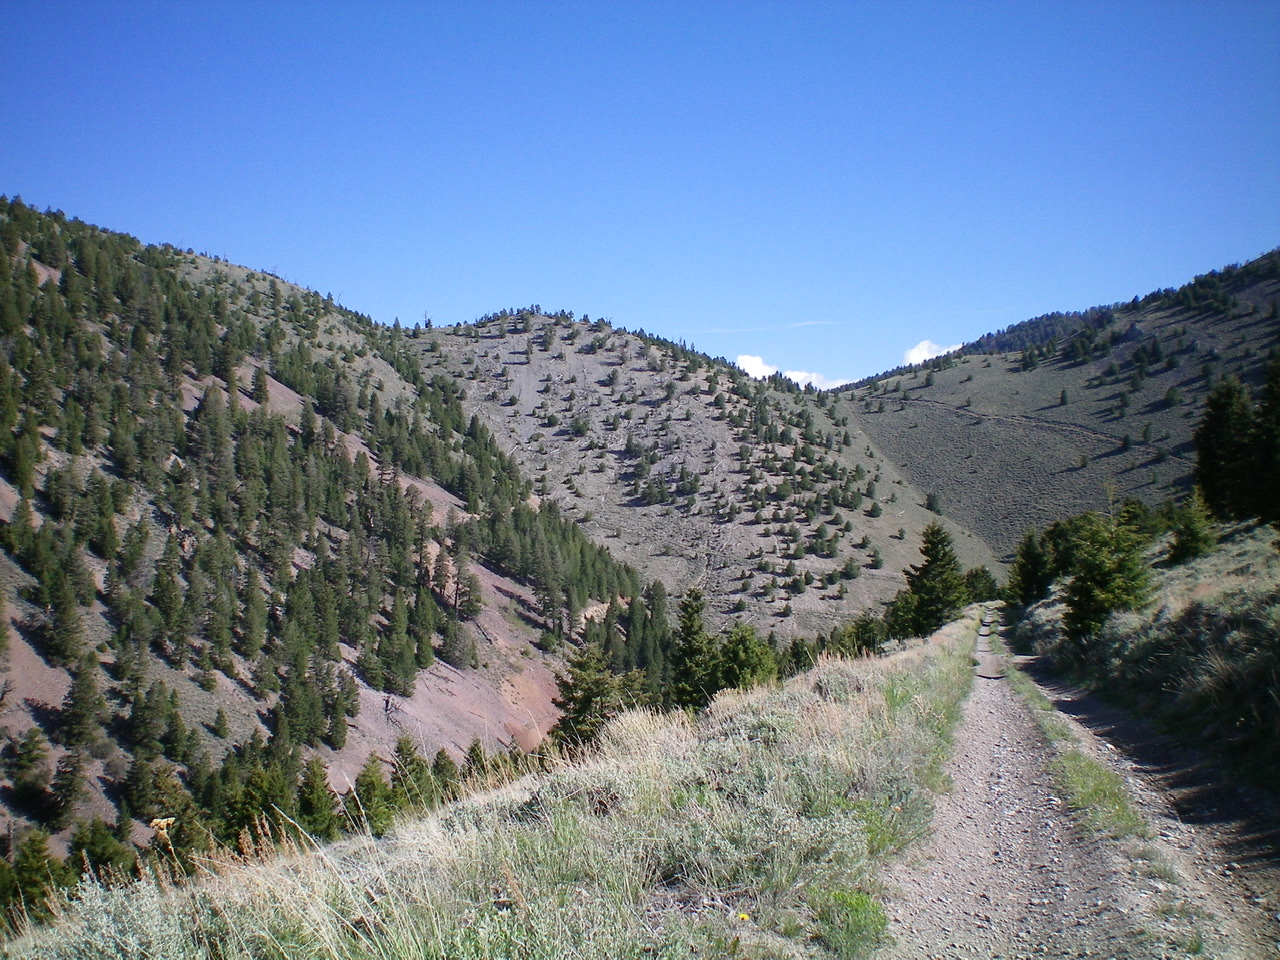 Peak 8963 viewed from Long Canyon Road/Trail to the South. The summit is just left of center. Livingston Douglas Photo